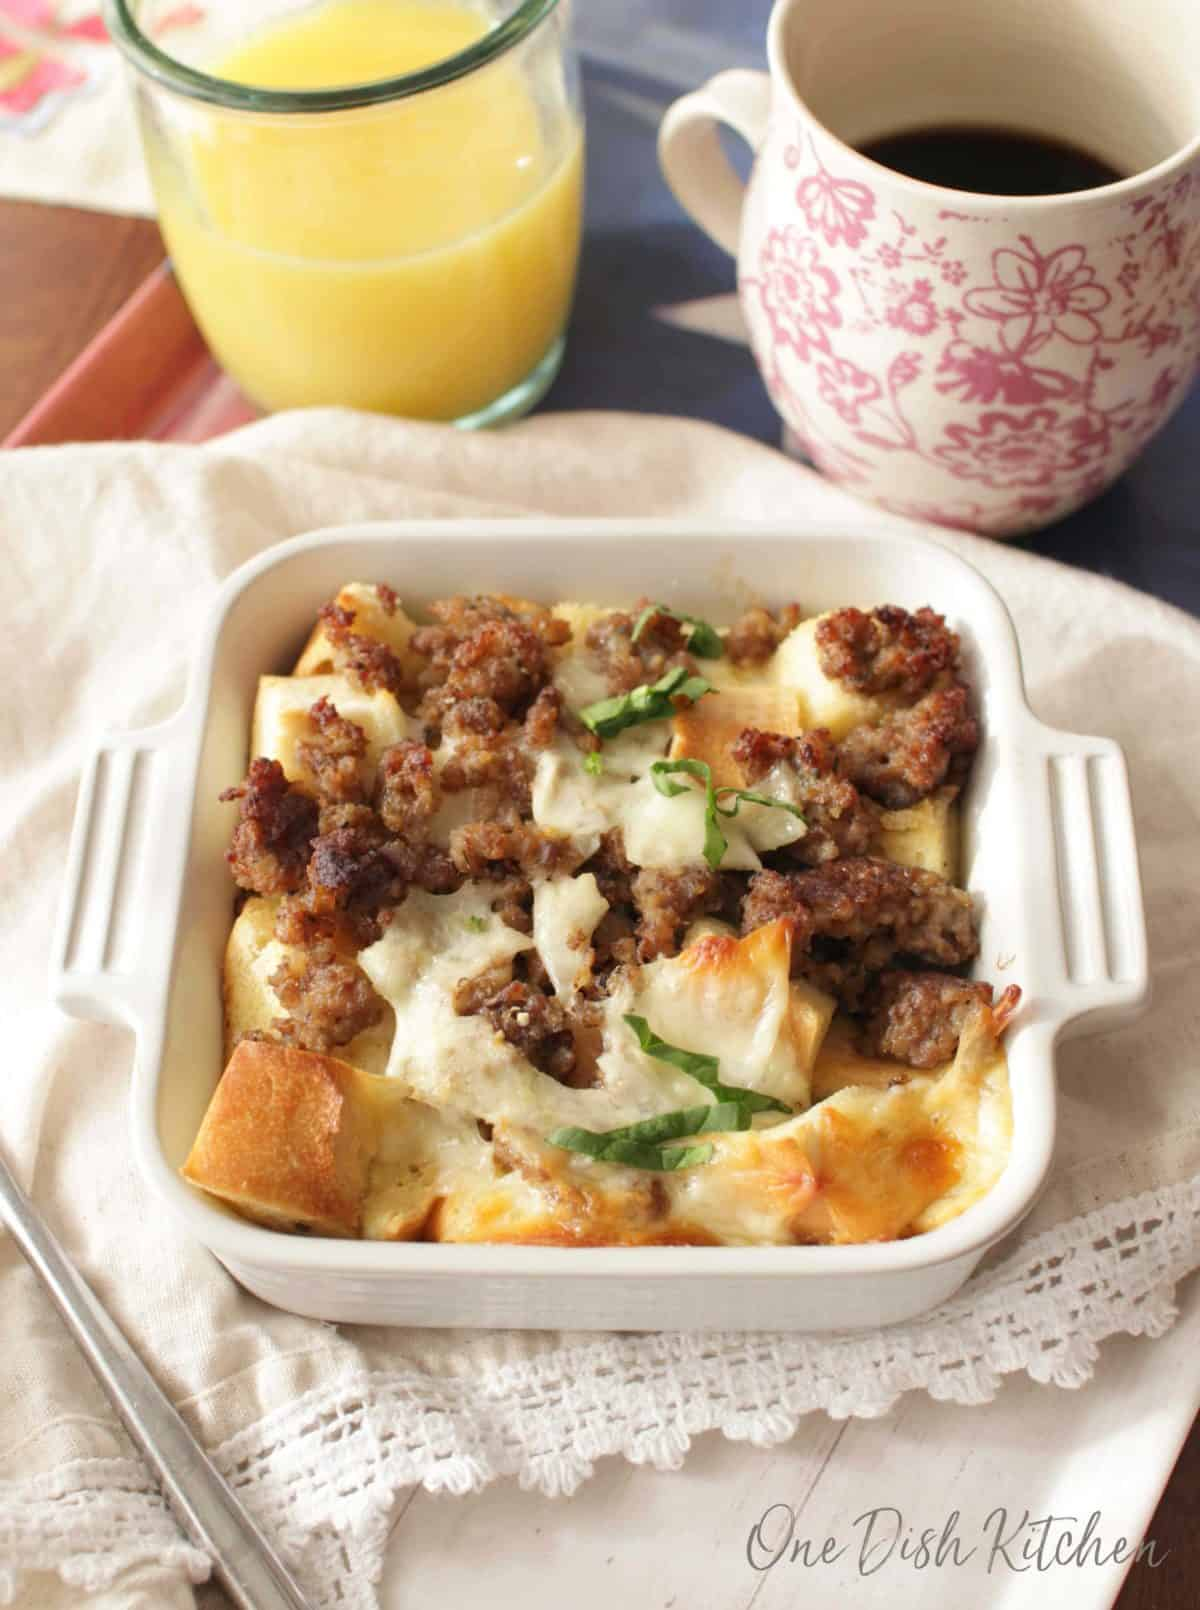 Breakfast casserole in a small baking dish next to a glass of orange juice and a coffee mug